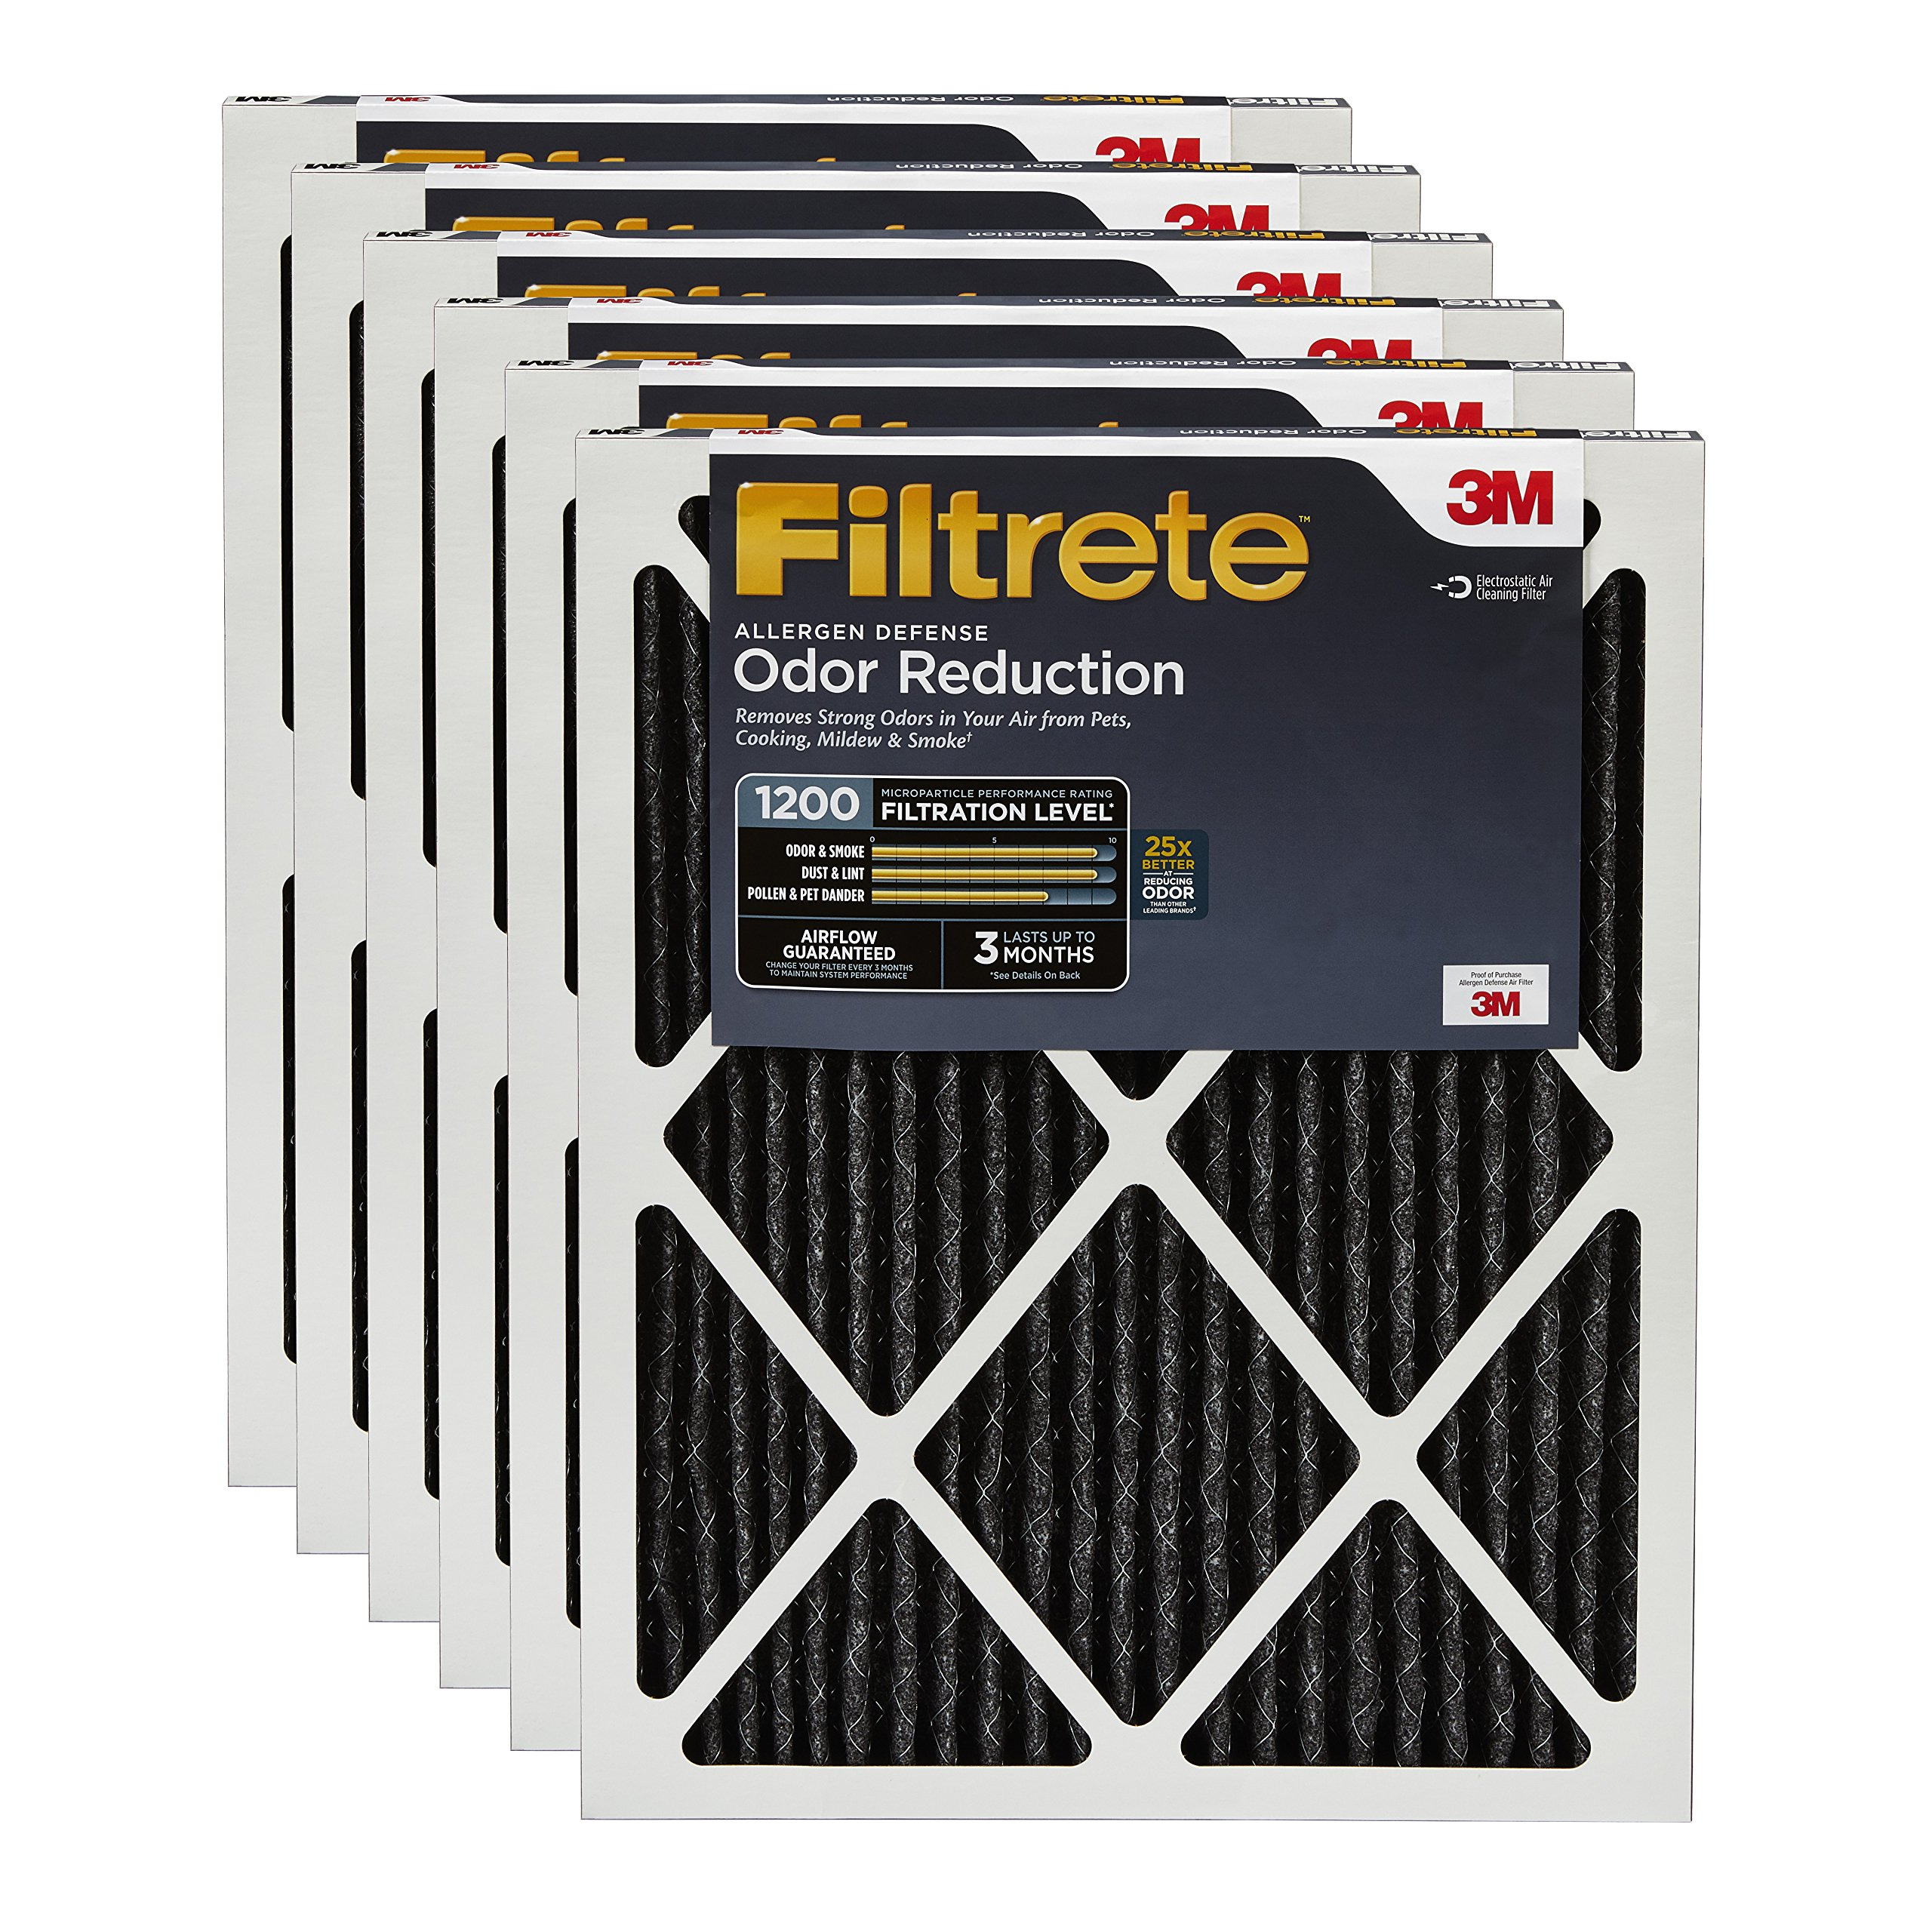 Filtrete MPR 1200 14 x 30 x 1 Allergen Defense Odor Reduction HVAC Air Filter, 6-Pack